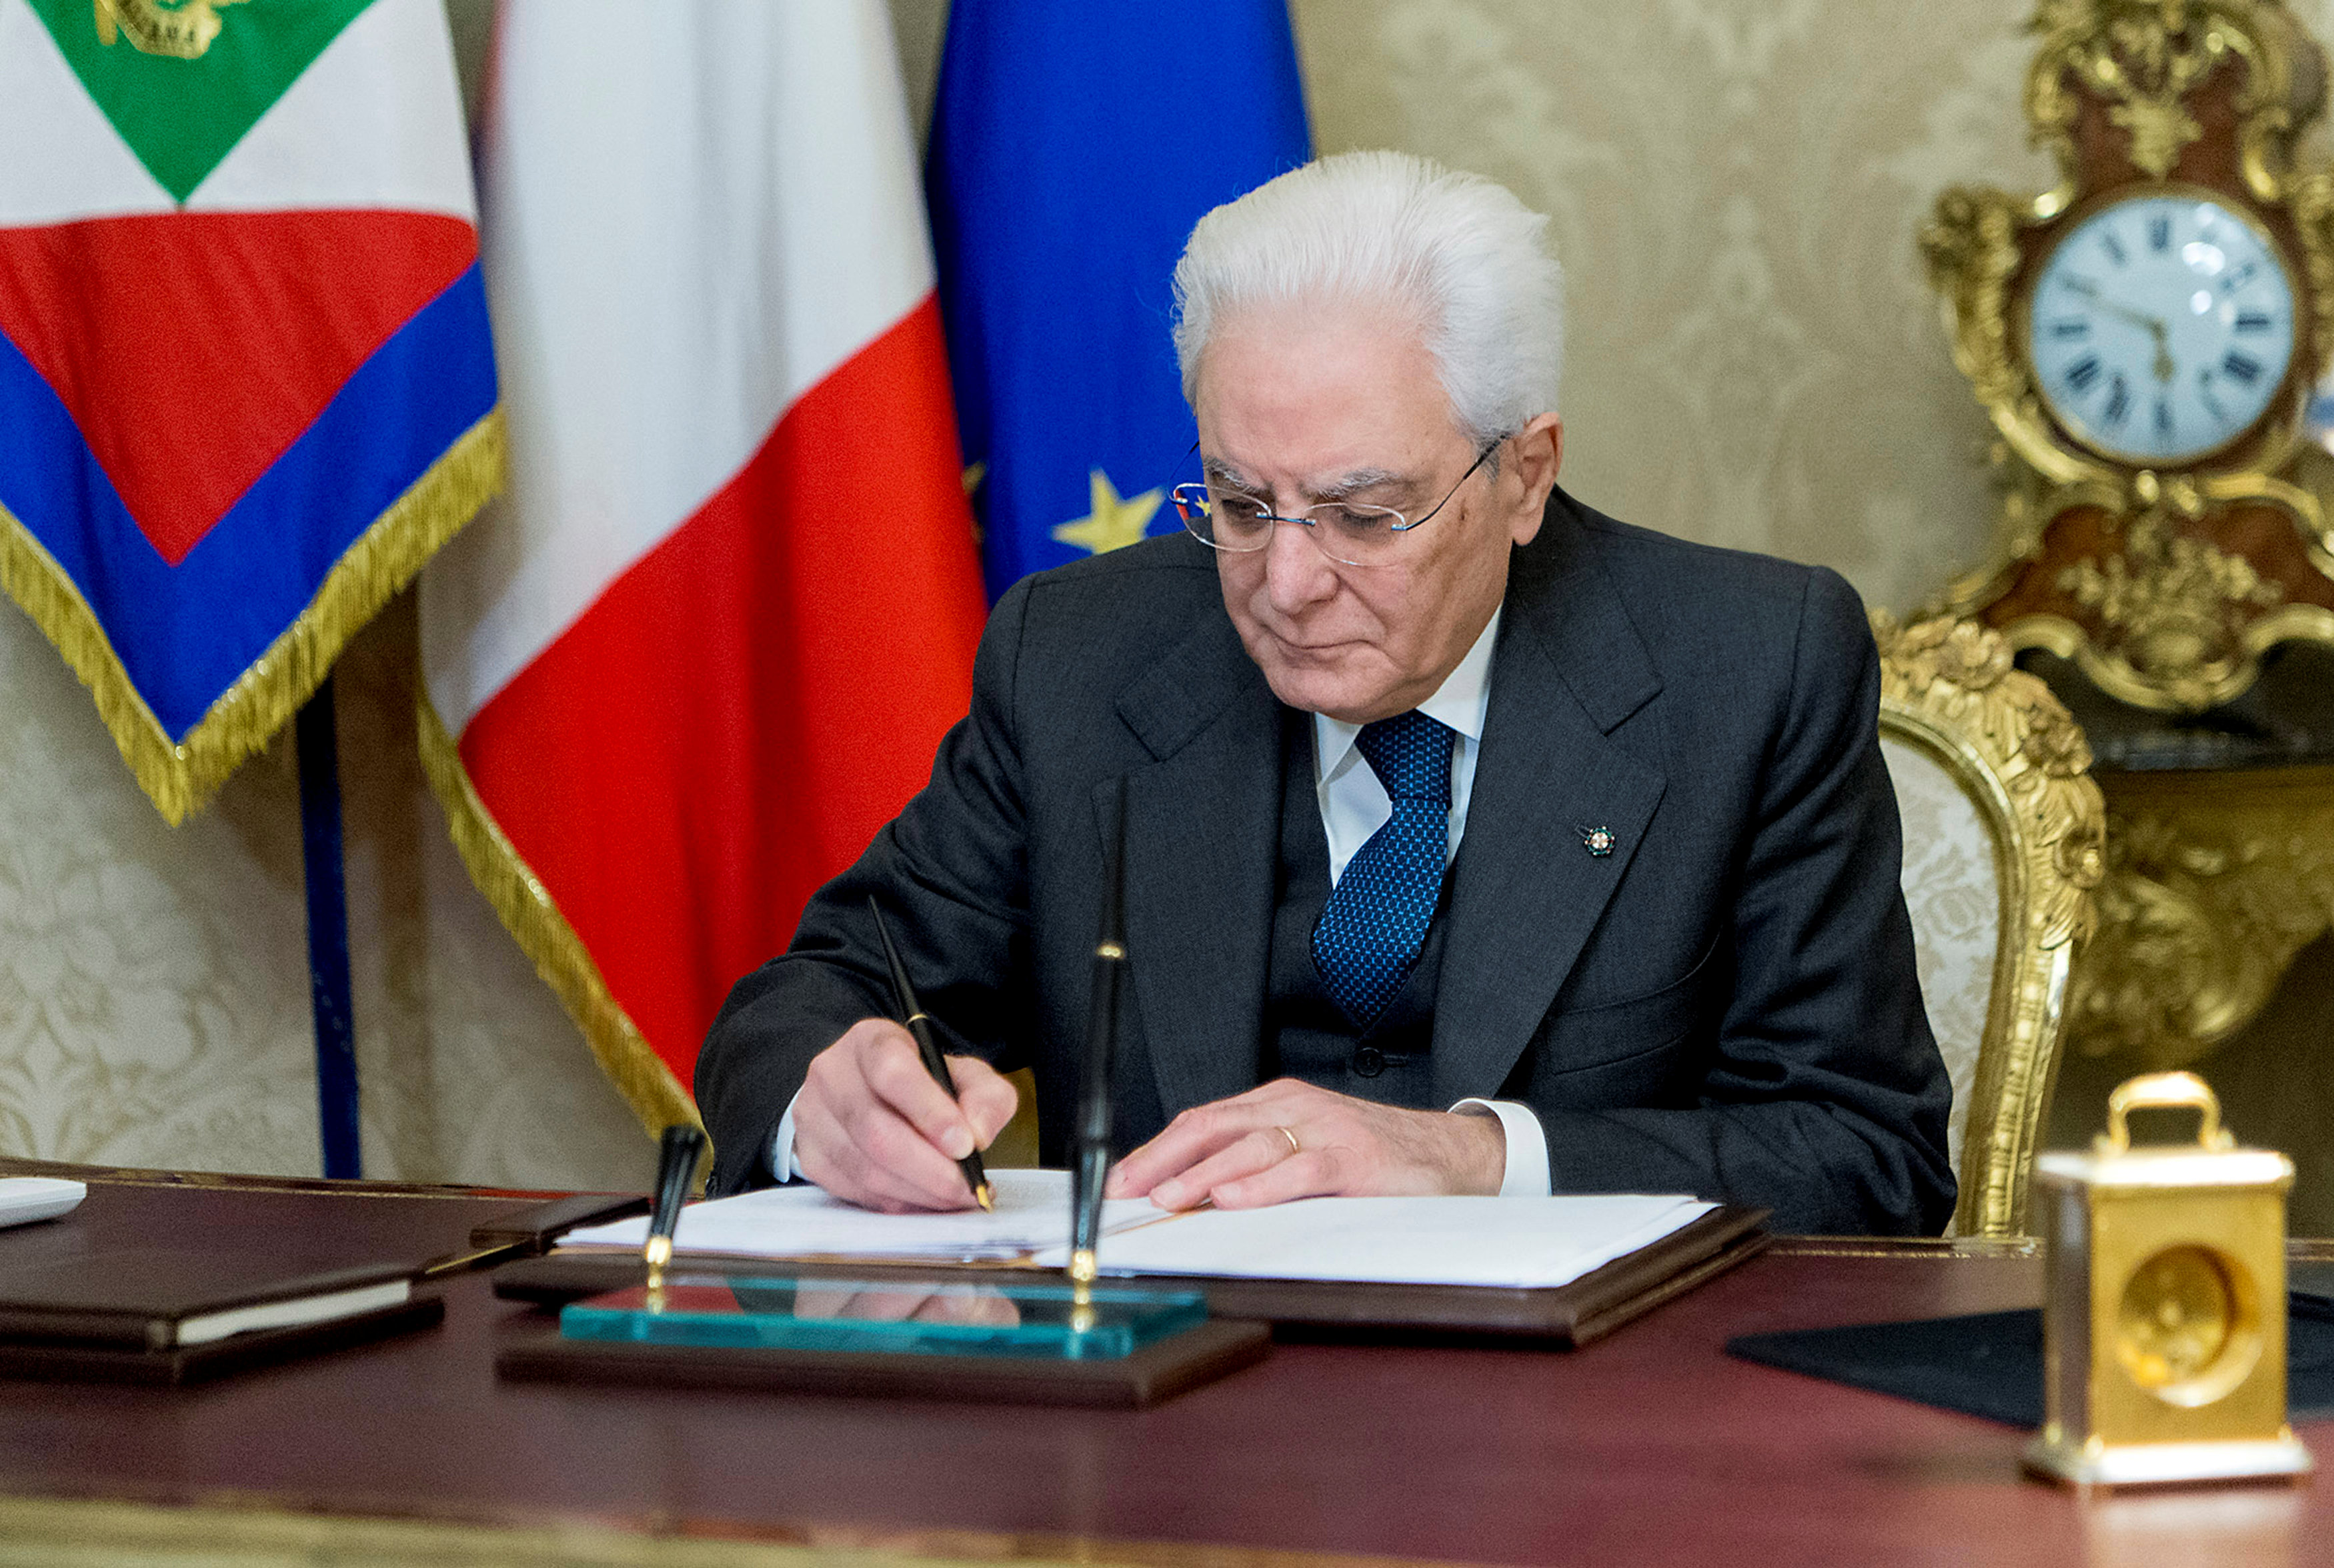 Italian President Sergio Mattarella signs a decree to dissolve parliament at the Quirinale Presidential palace in Rome, Italy,